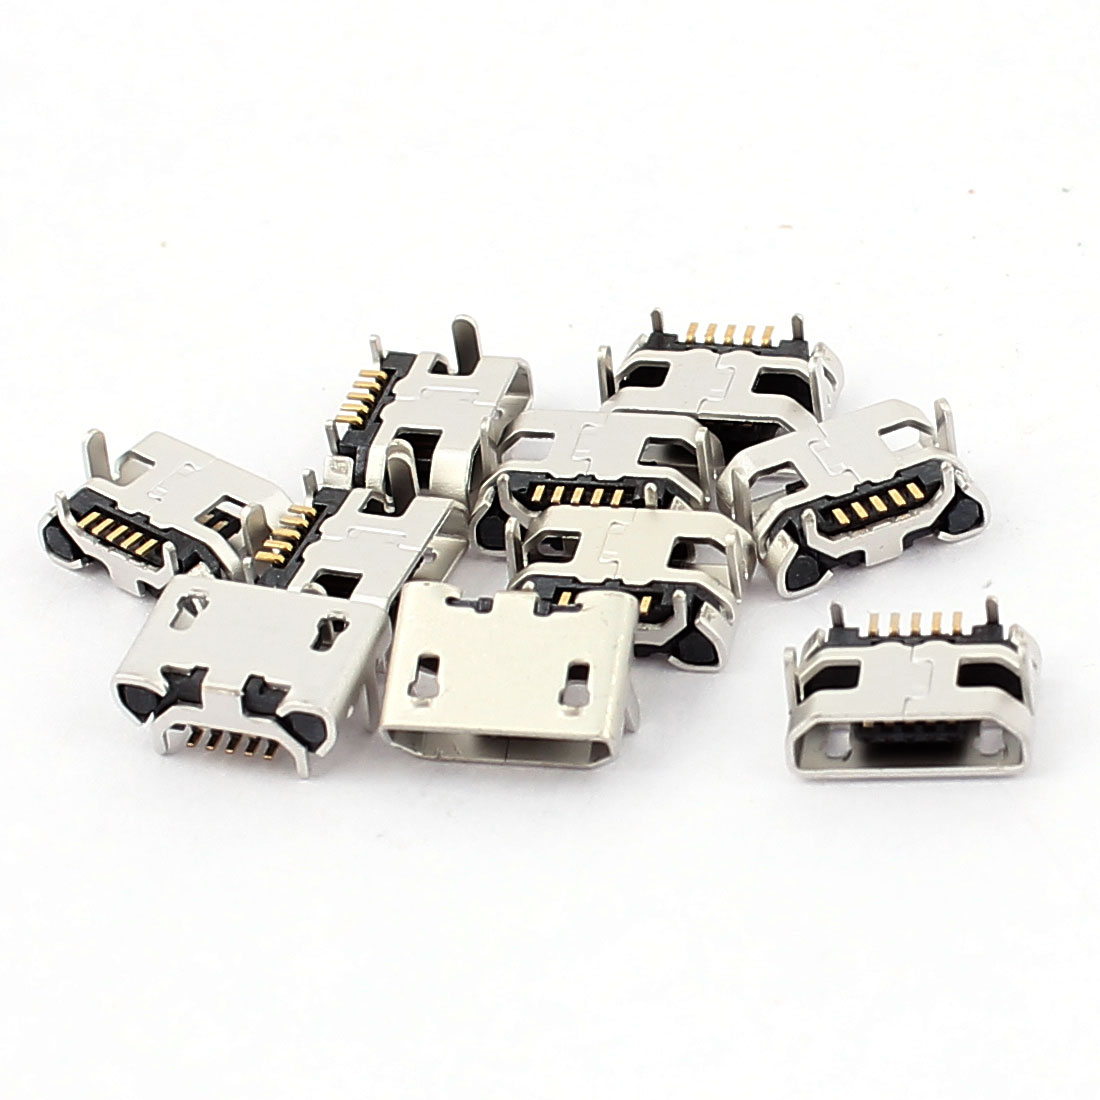 10 Pcs 5 Pin PCB Mount Micro B USB Female SMT Connector Data Port